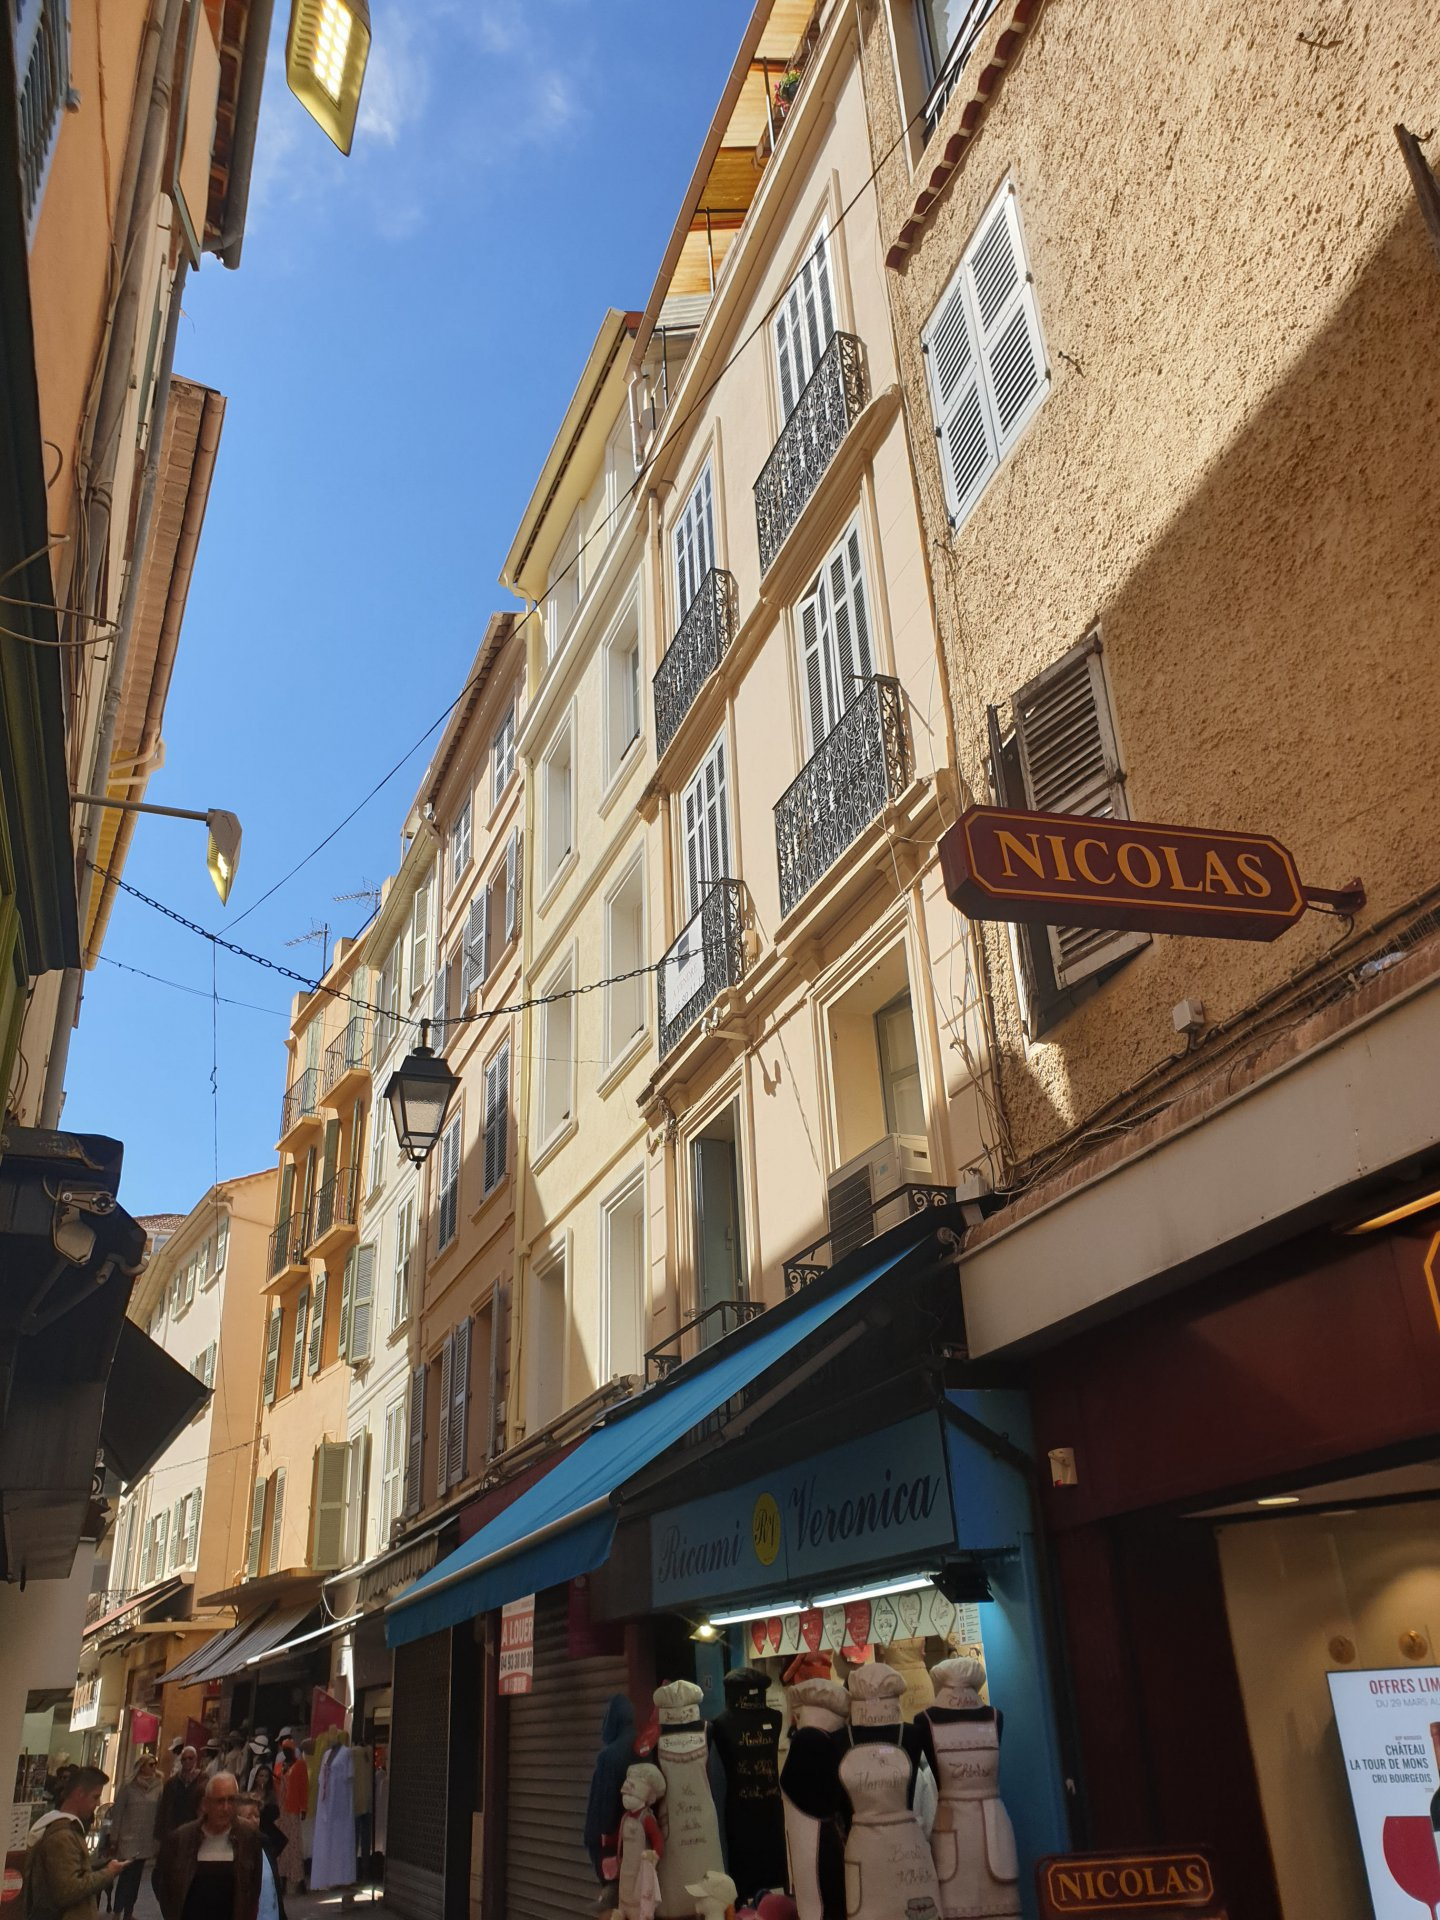 Affitto stagionale Monolocale - Cannes